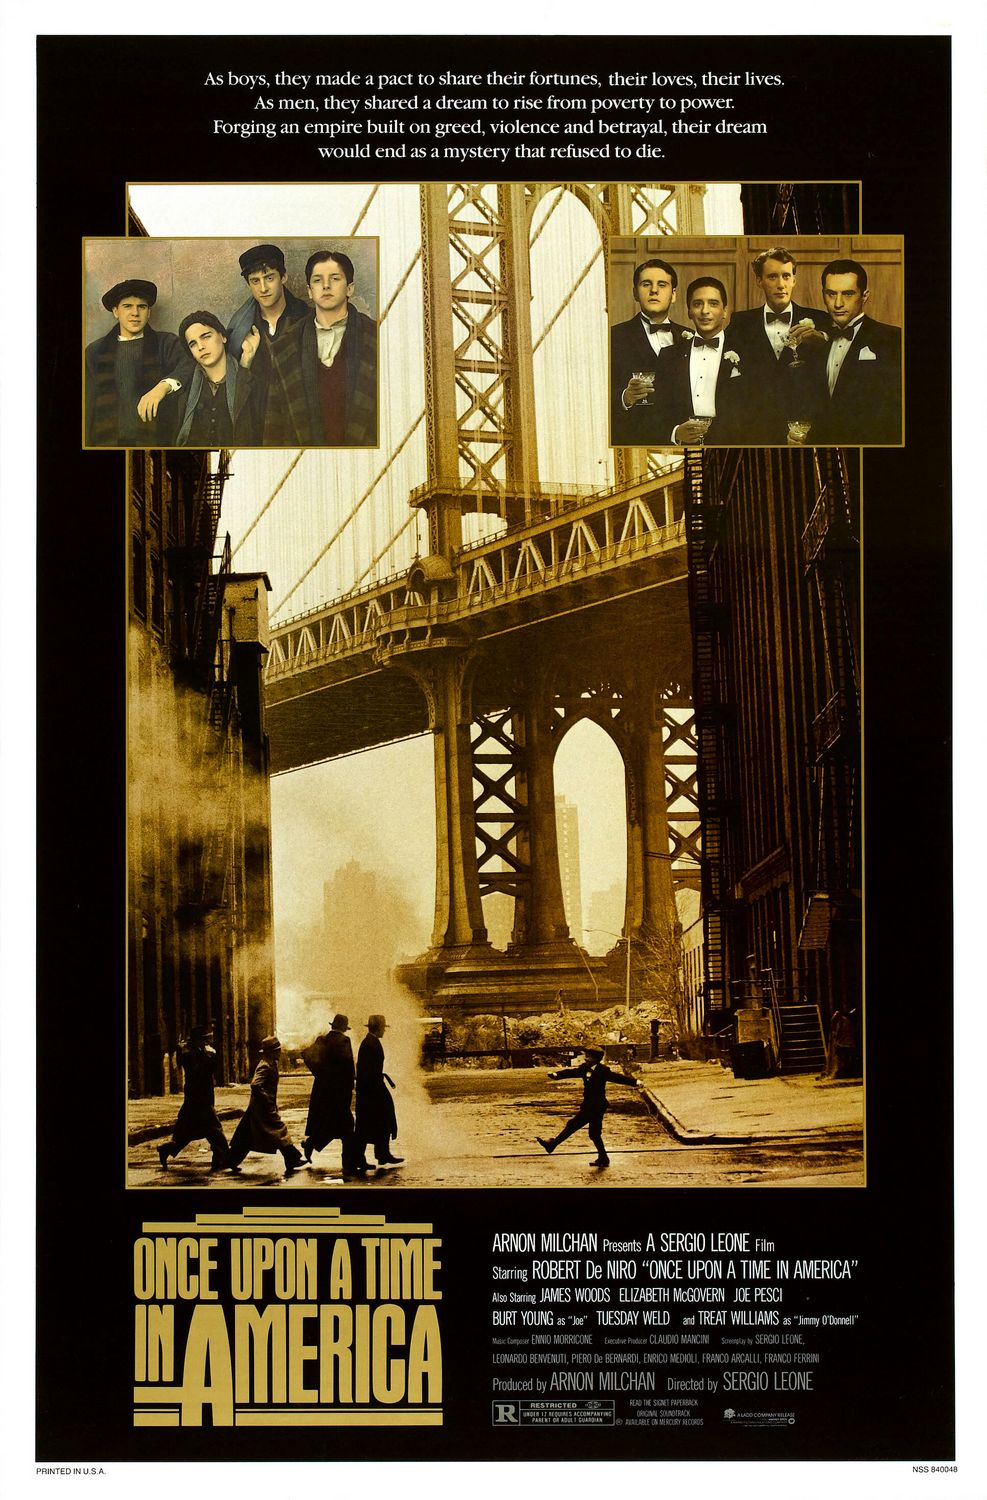 erase una vez en america once upon a time in america poster